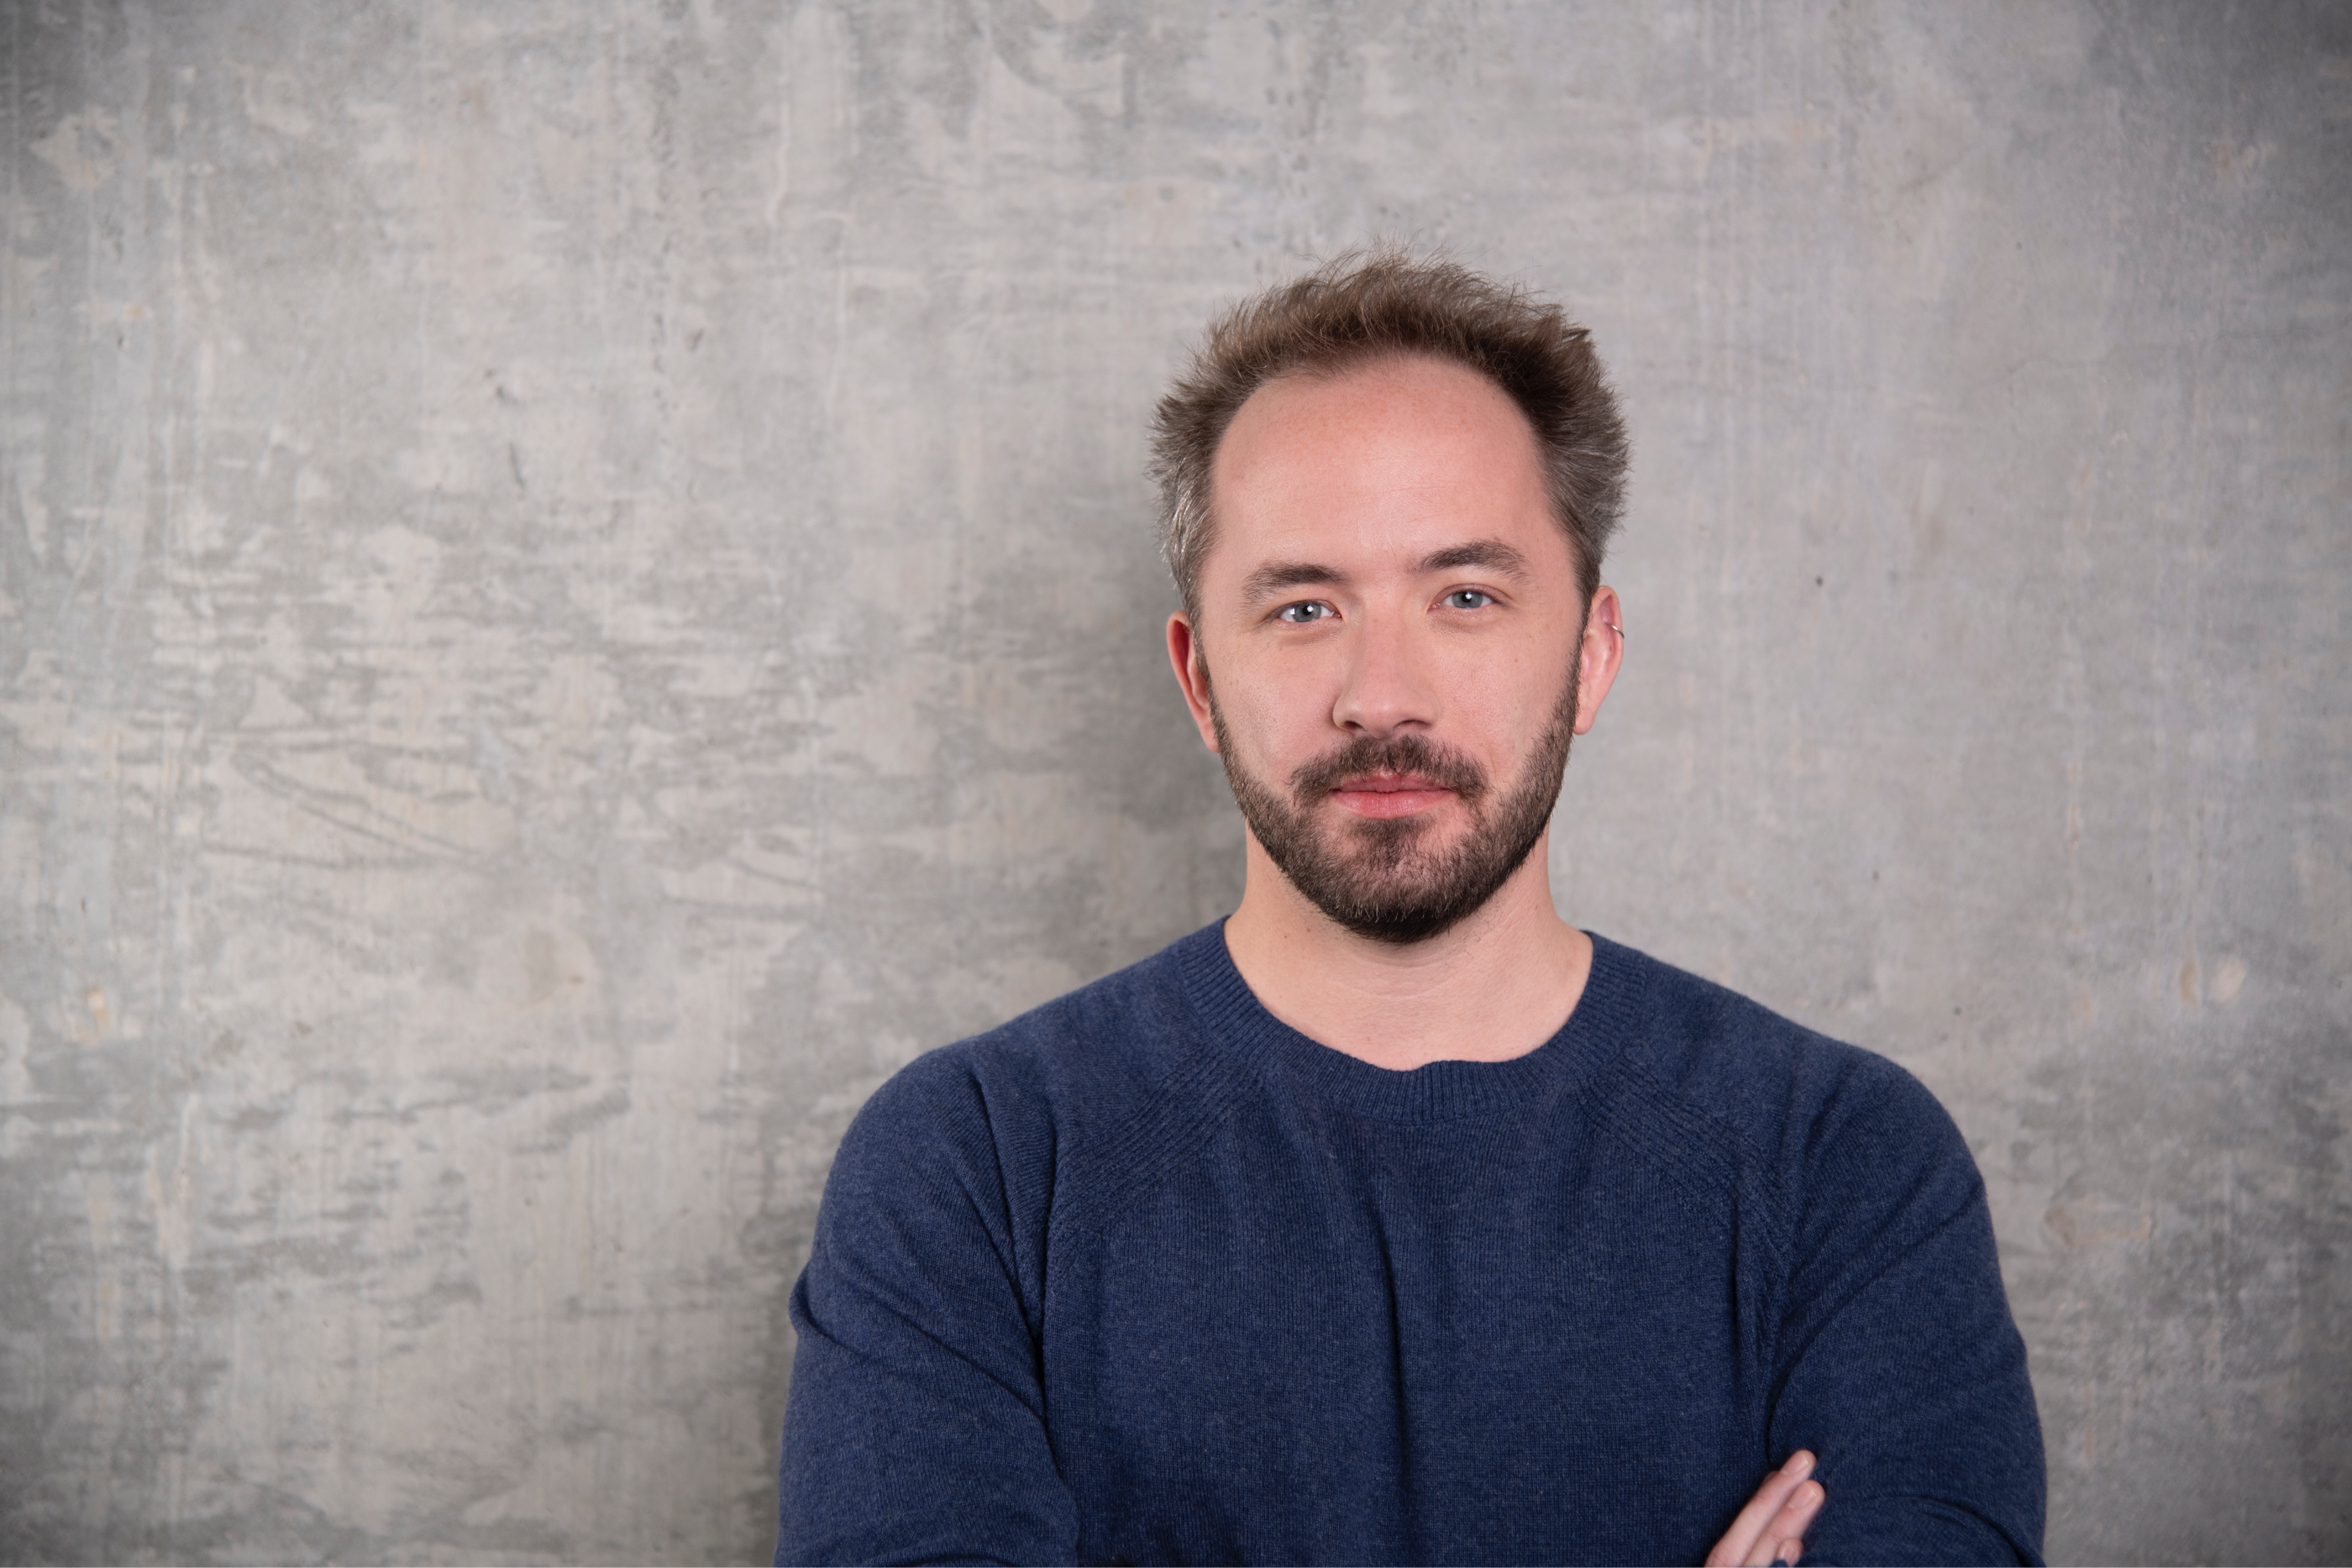 Dropbox CEO and co-founder Drew Houston joins Facebook's board of directors, effective immediately (About Facebook)